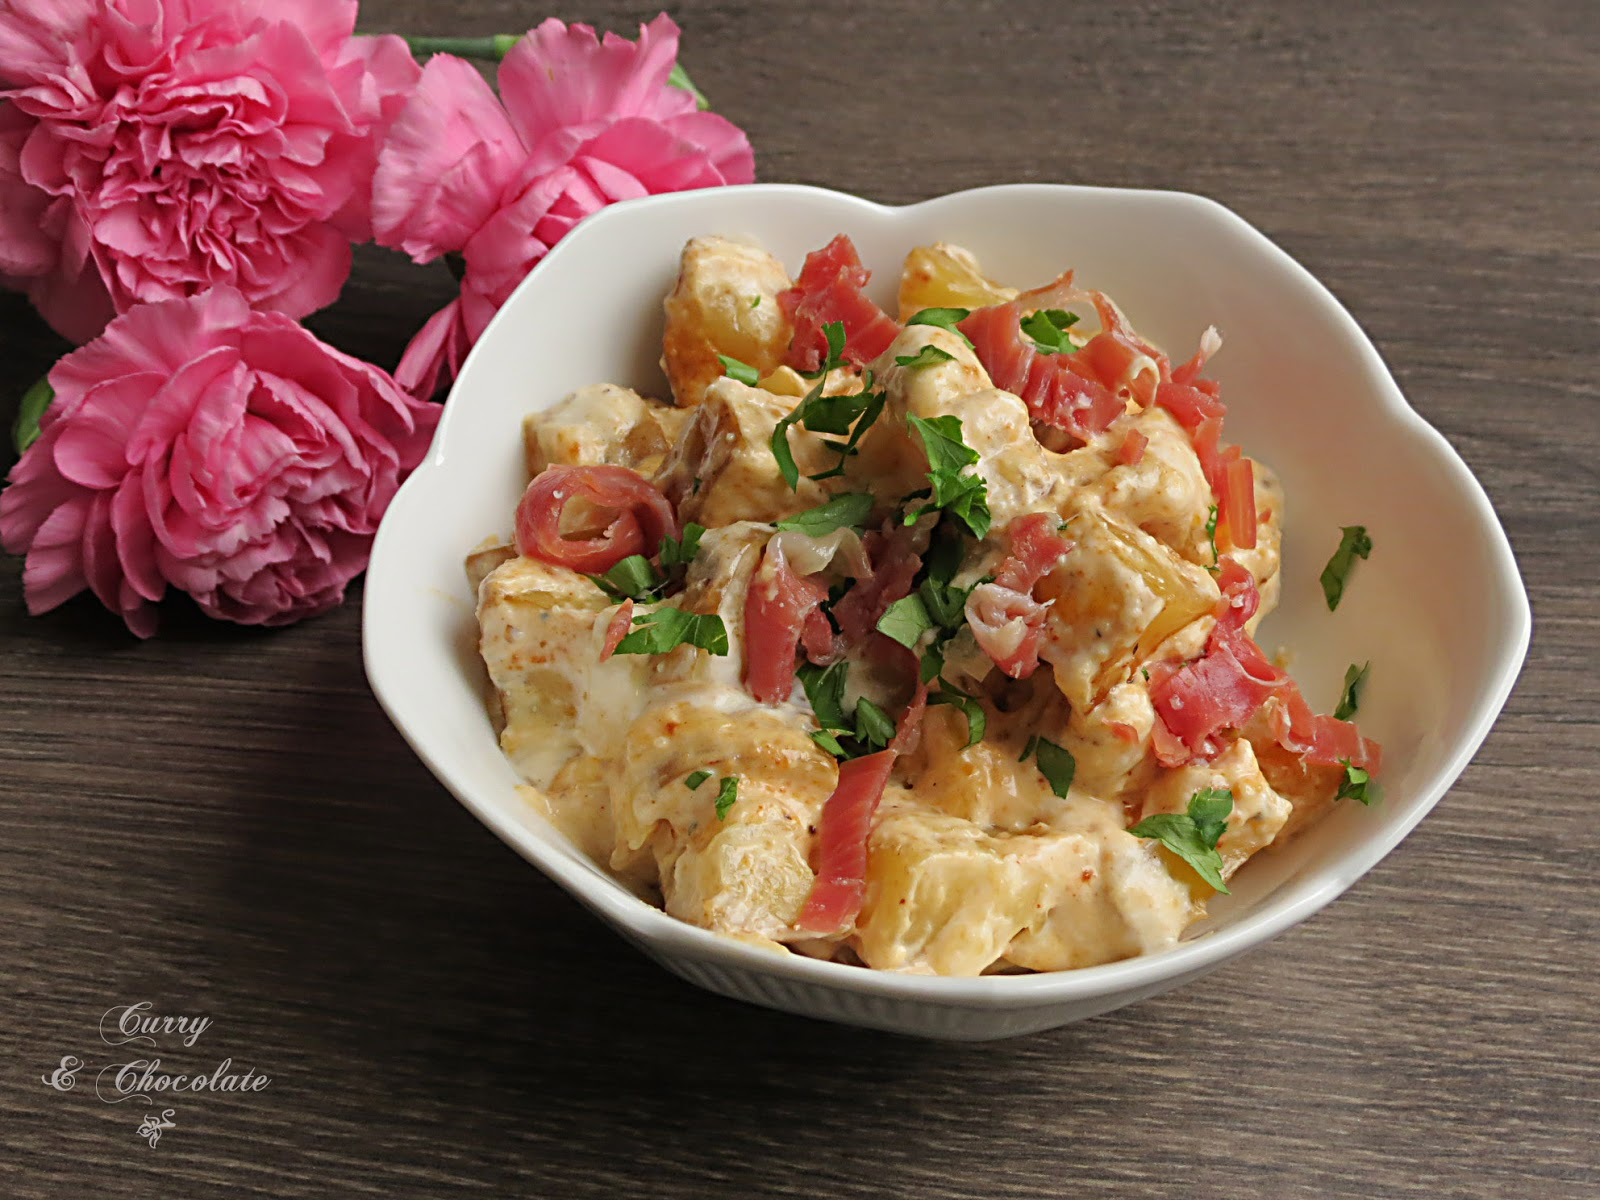 Ensalada de patatas asadas con jamón y salsa de yogur – Baked potato salad with prosciutto in a yogurt dressing